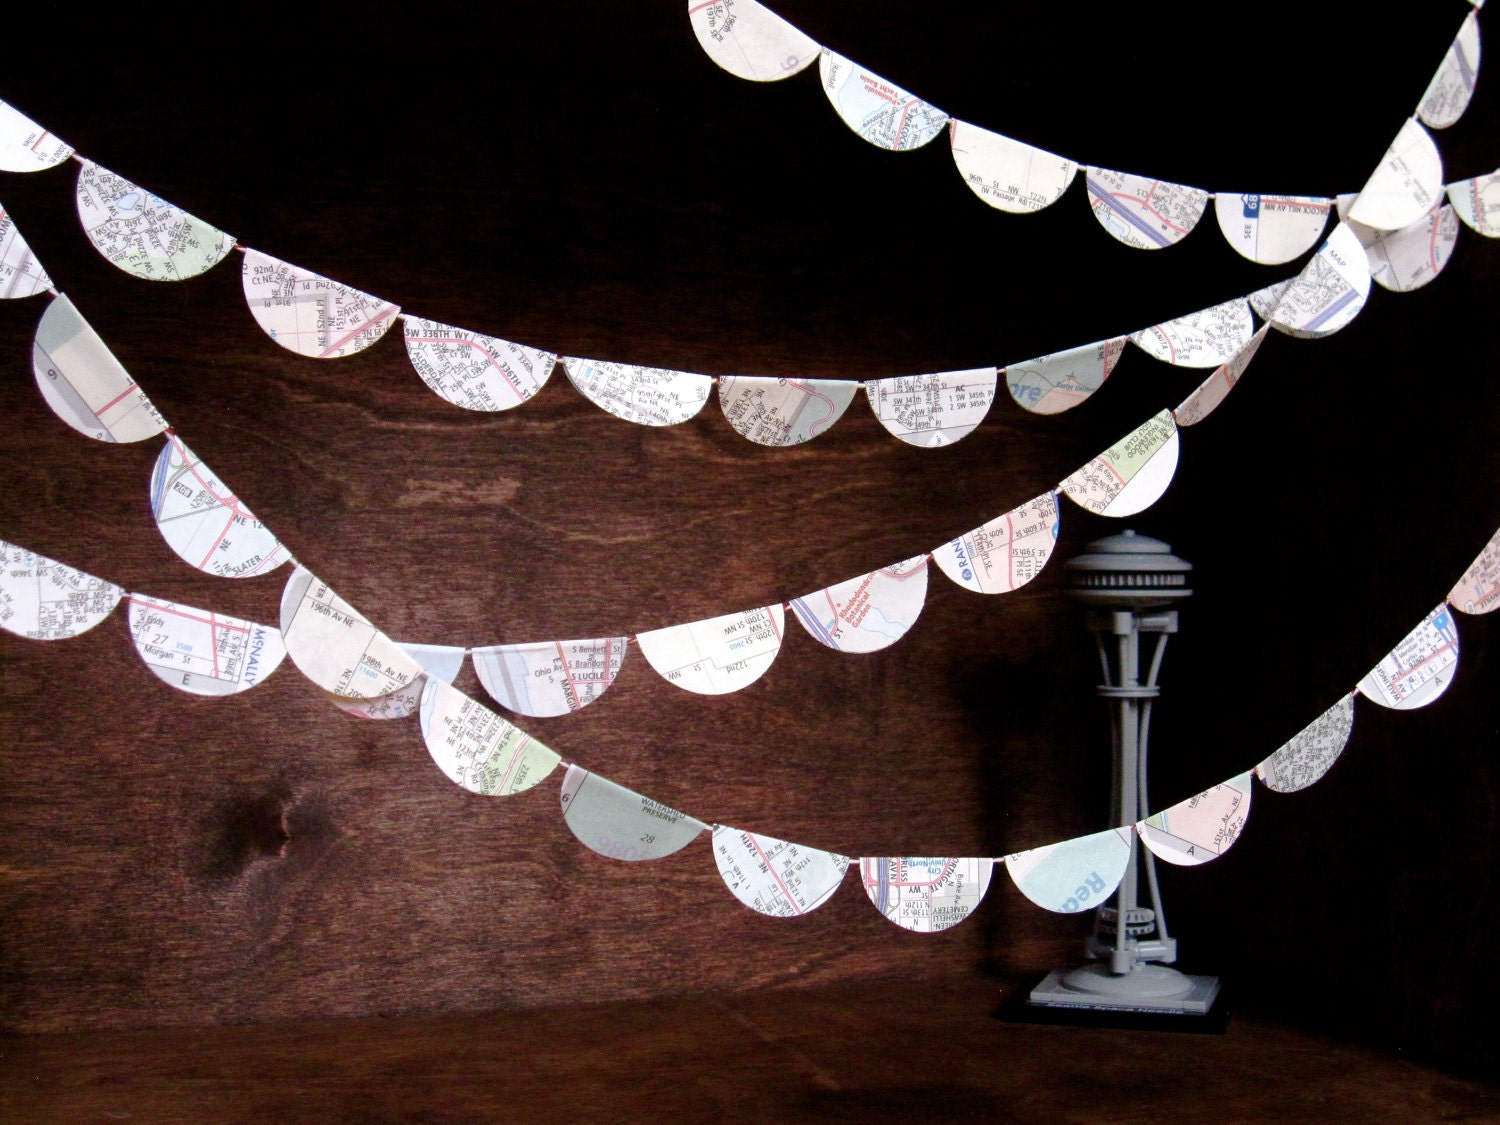 Urban Wanderer Map Garland - Seattle - Ten Feet of Upcycled City Atlas Party Decoration Playful Home Decor - Palimpsestic